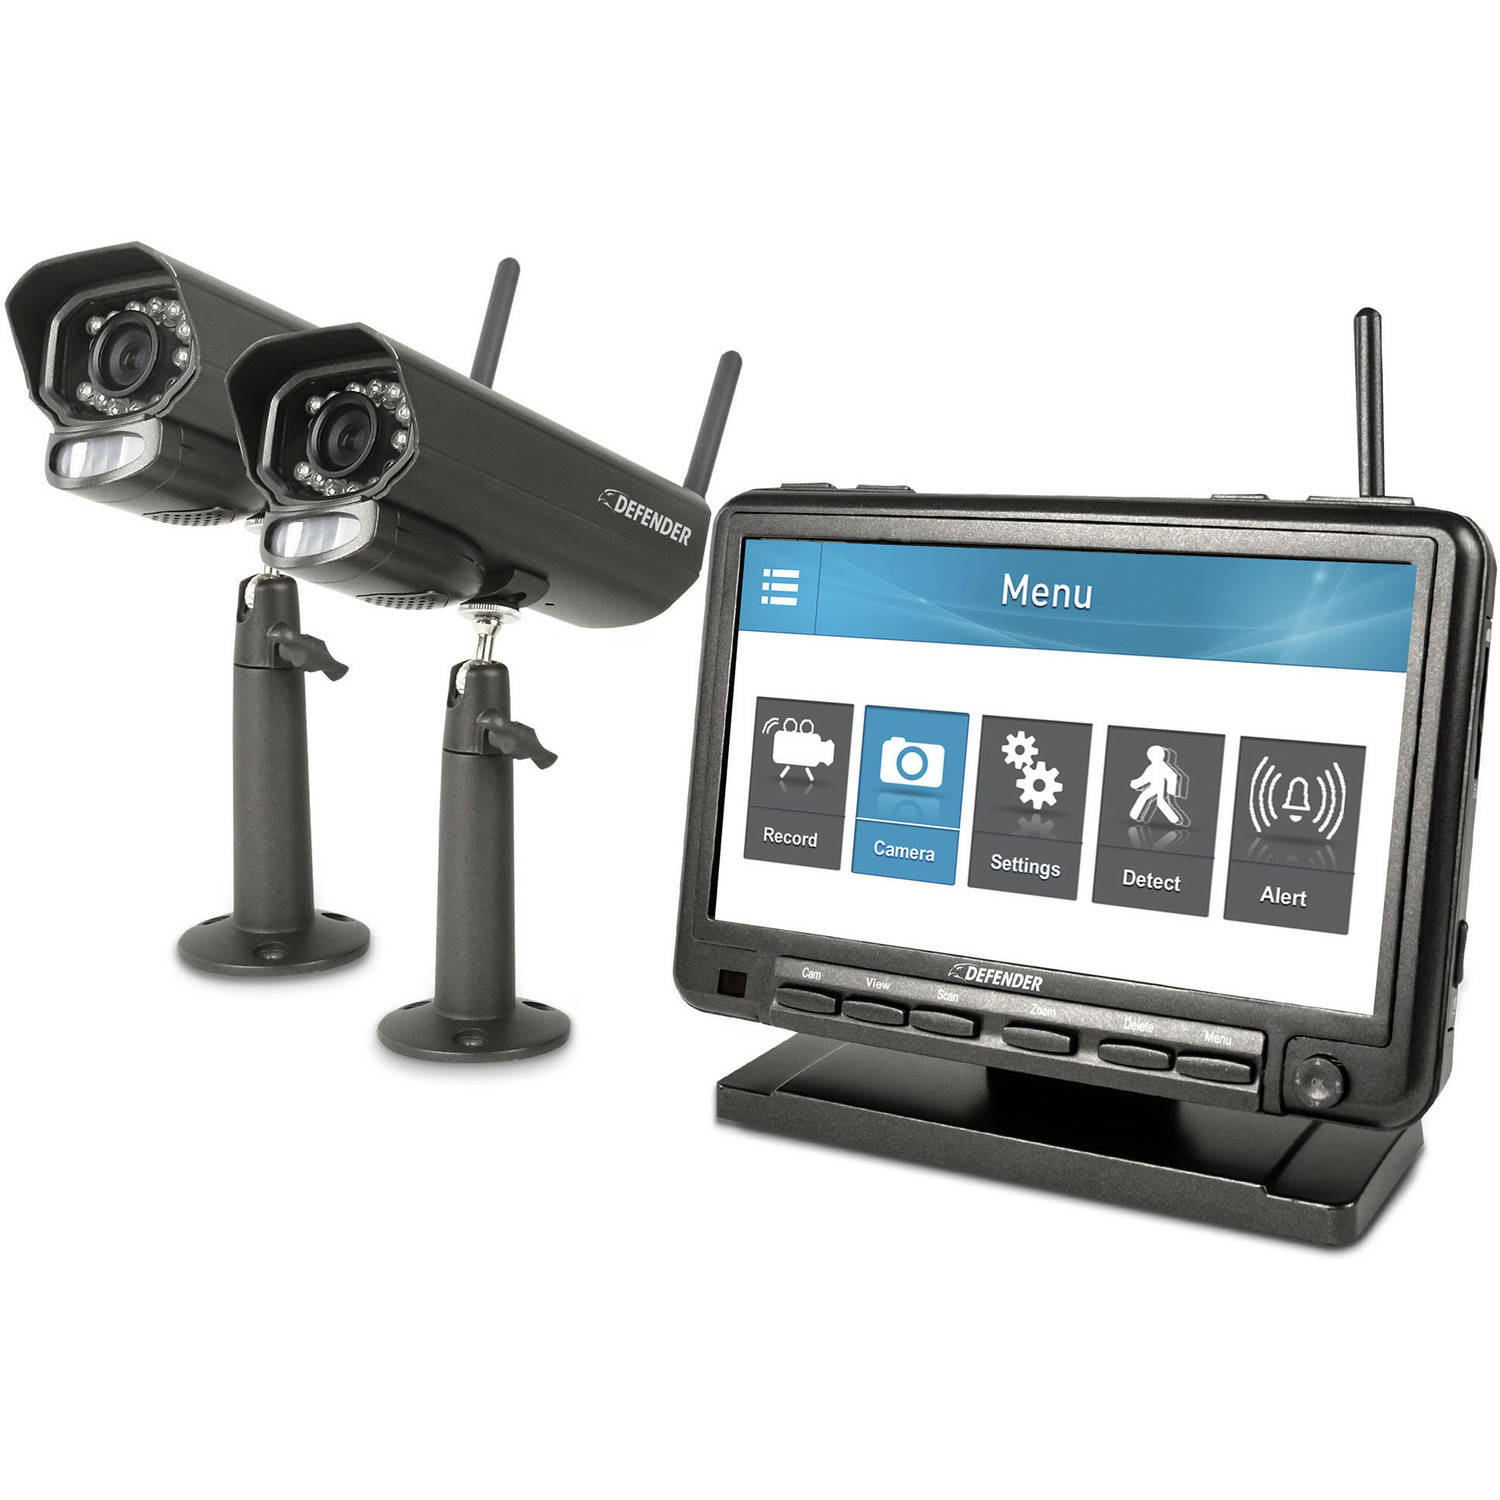 "Defender PhoenixM2 Digital Wireless 7"" Monitor DVR Security System with 2 Long-Range Night Vision Cameras and SD Card Recording"